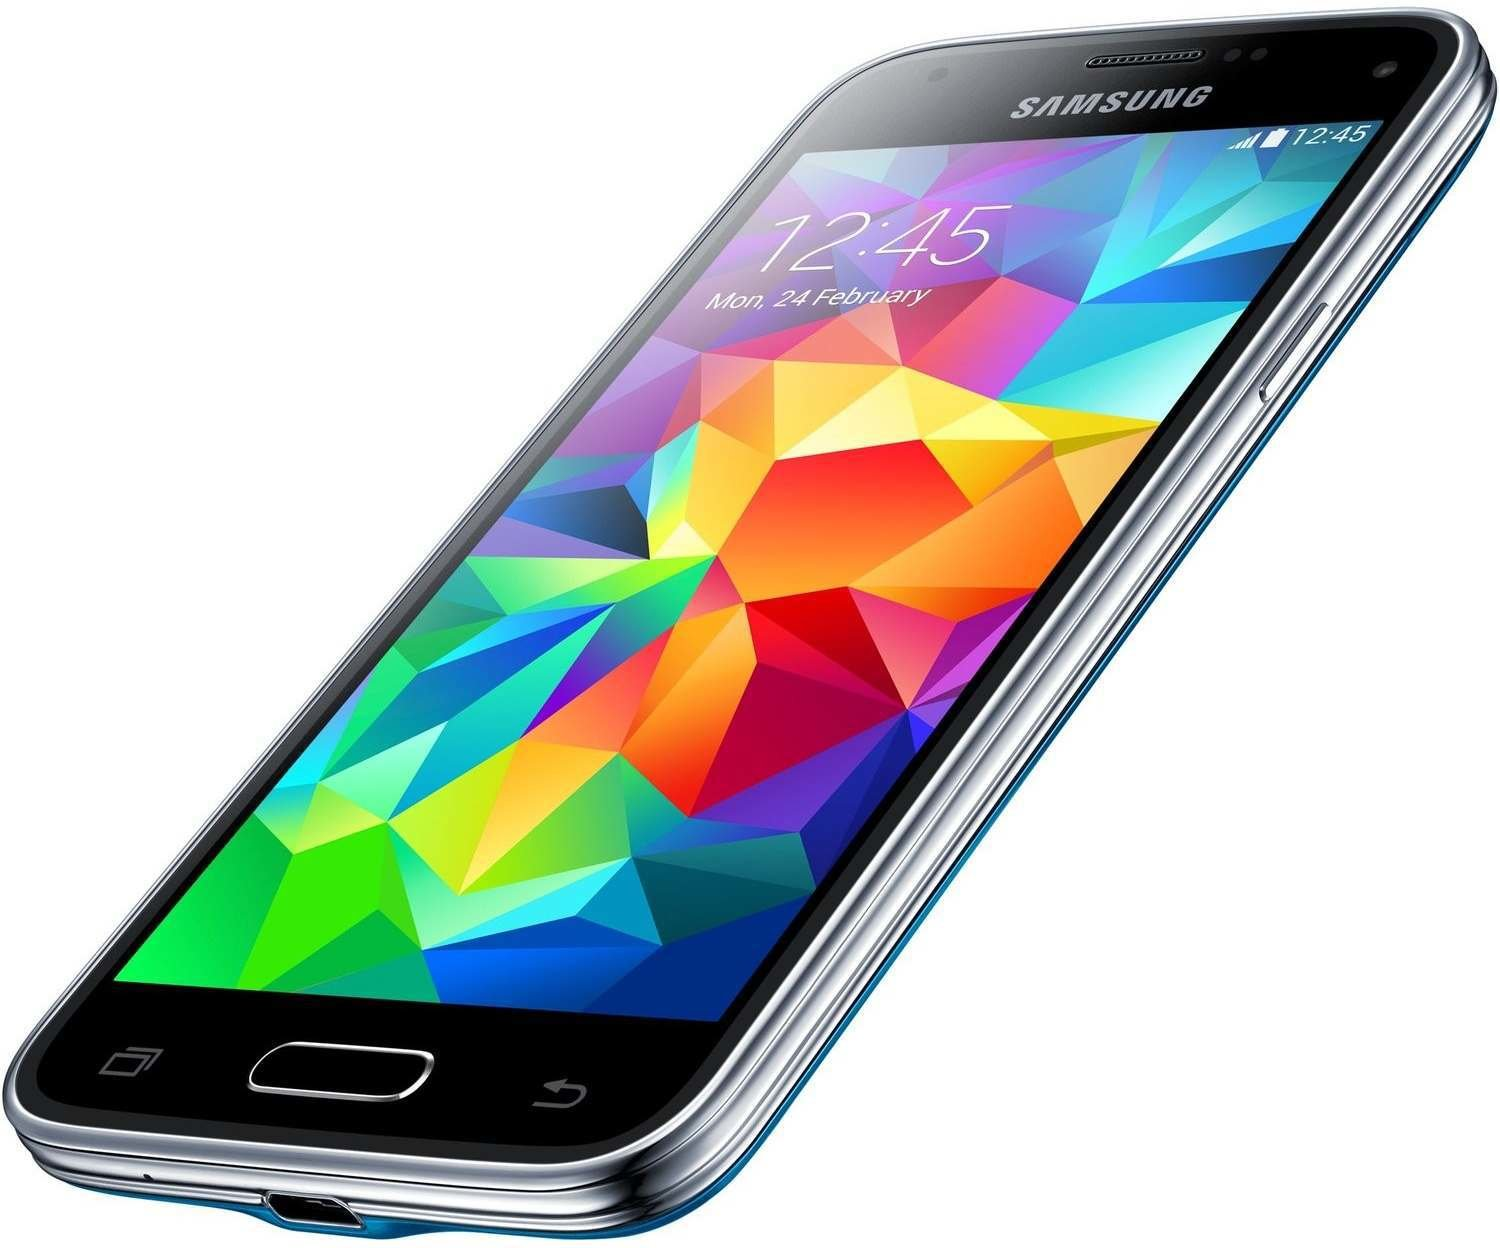 samsung galaxy s5 mini blau test smartphone. Black Bedroom Furniture Sets. Home Design Ideas